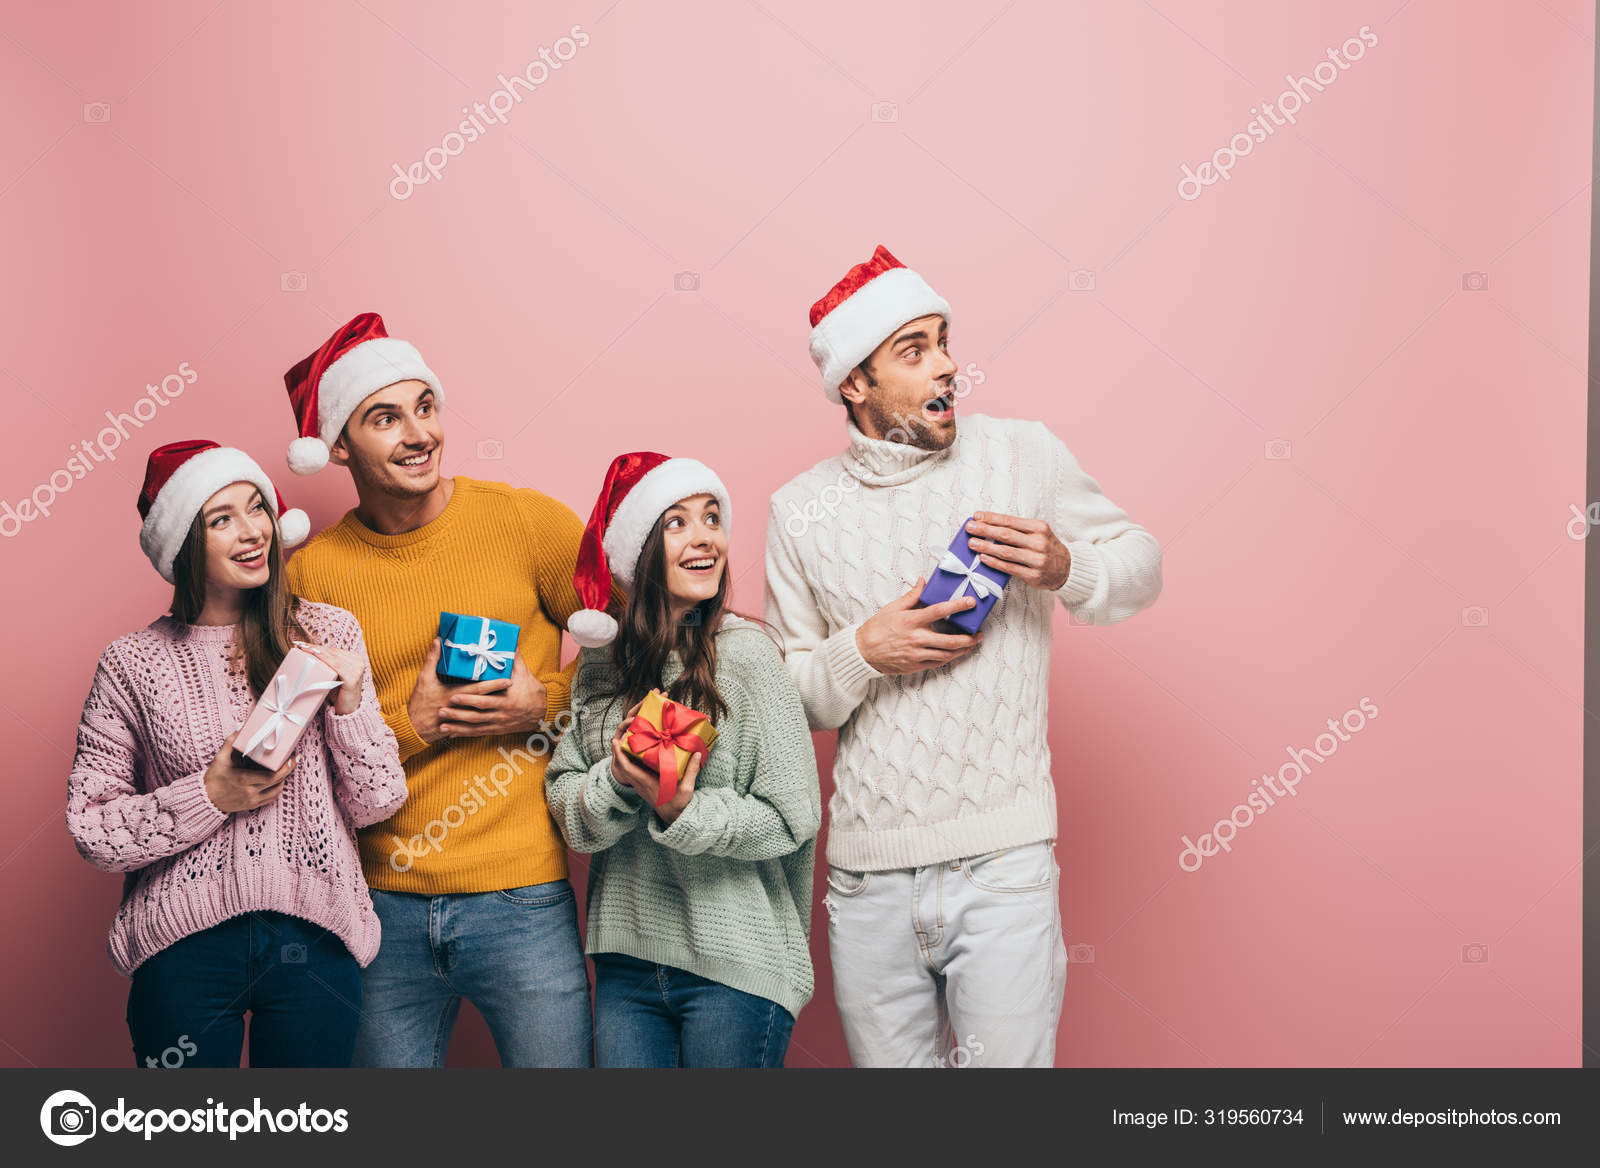 Happy Friends Santa Hats Holding Christmas Presents Isolated Pink